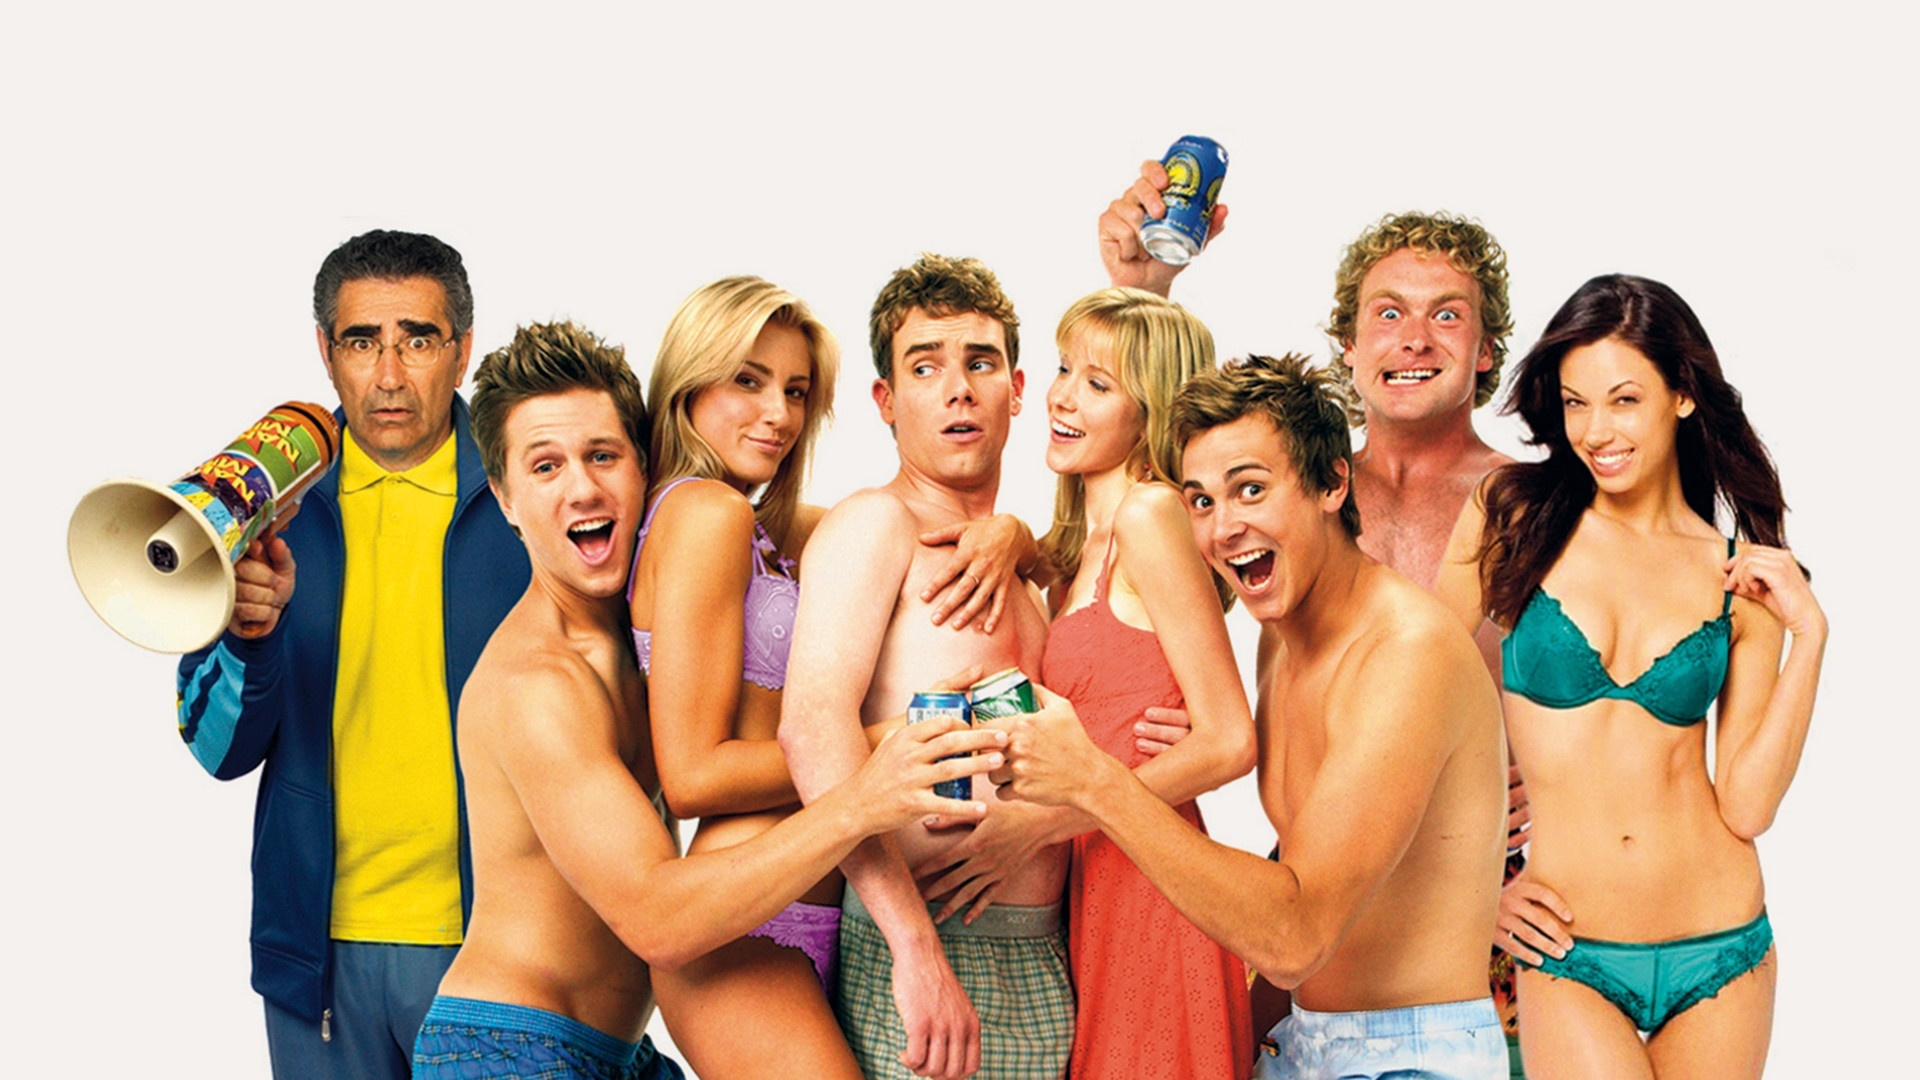 American Pie Presents Beta House Full Movie which american pie (franchise) movie should never have been